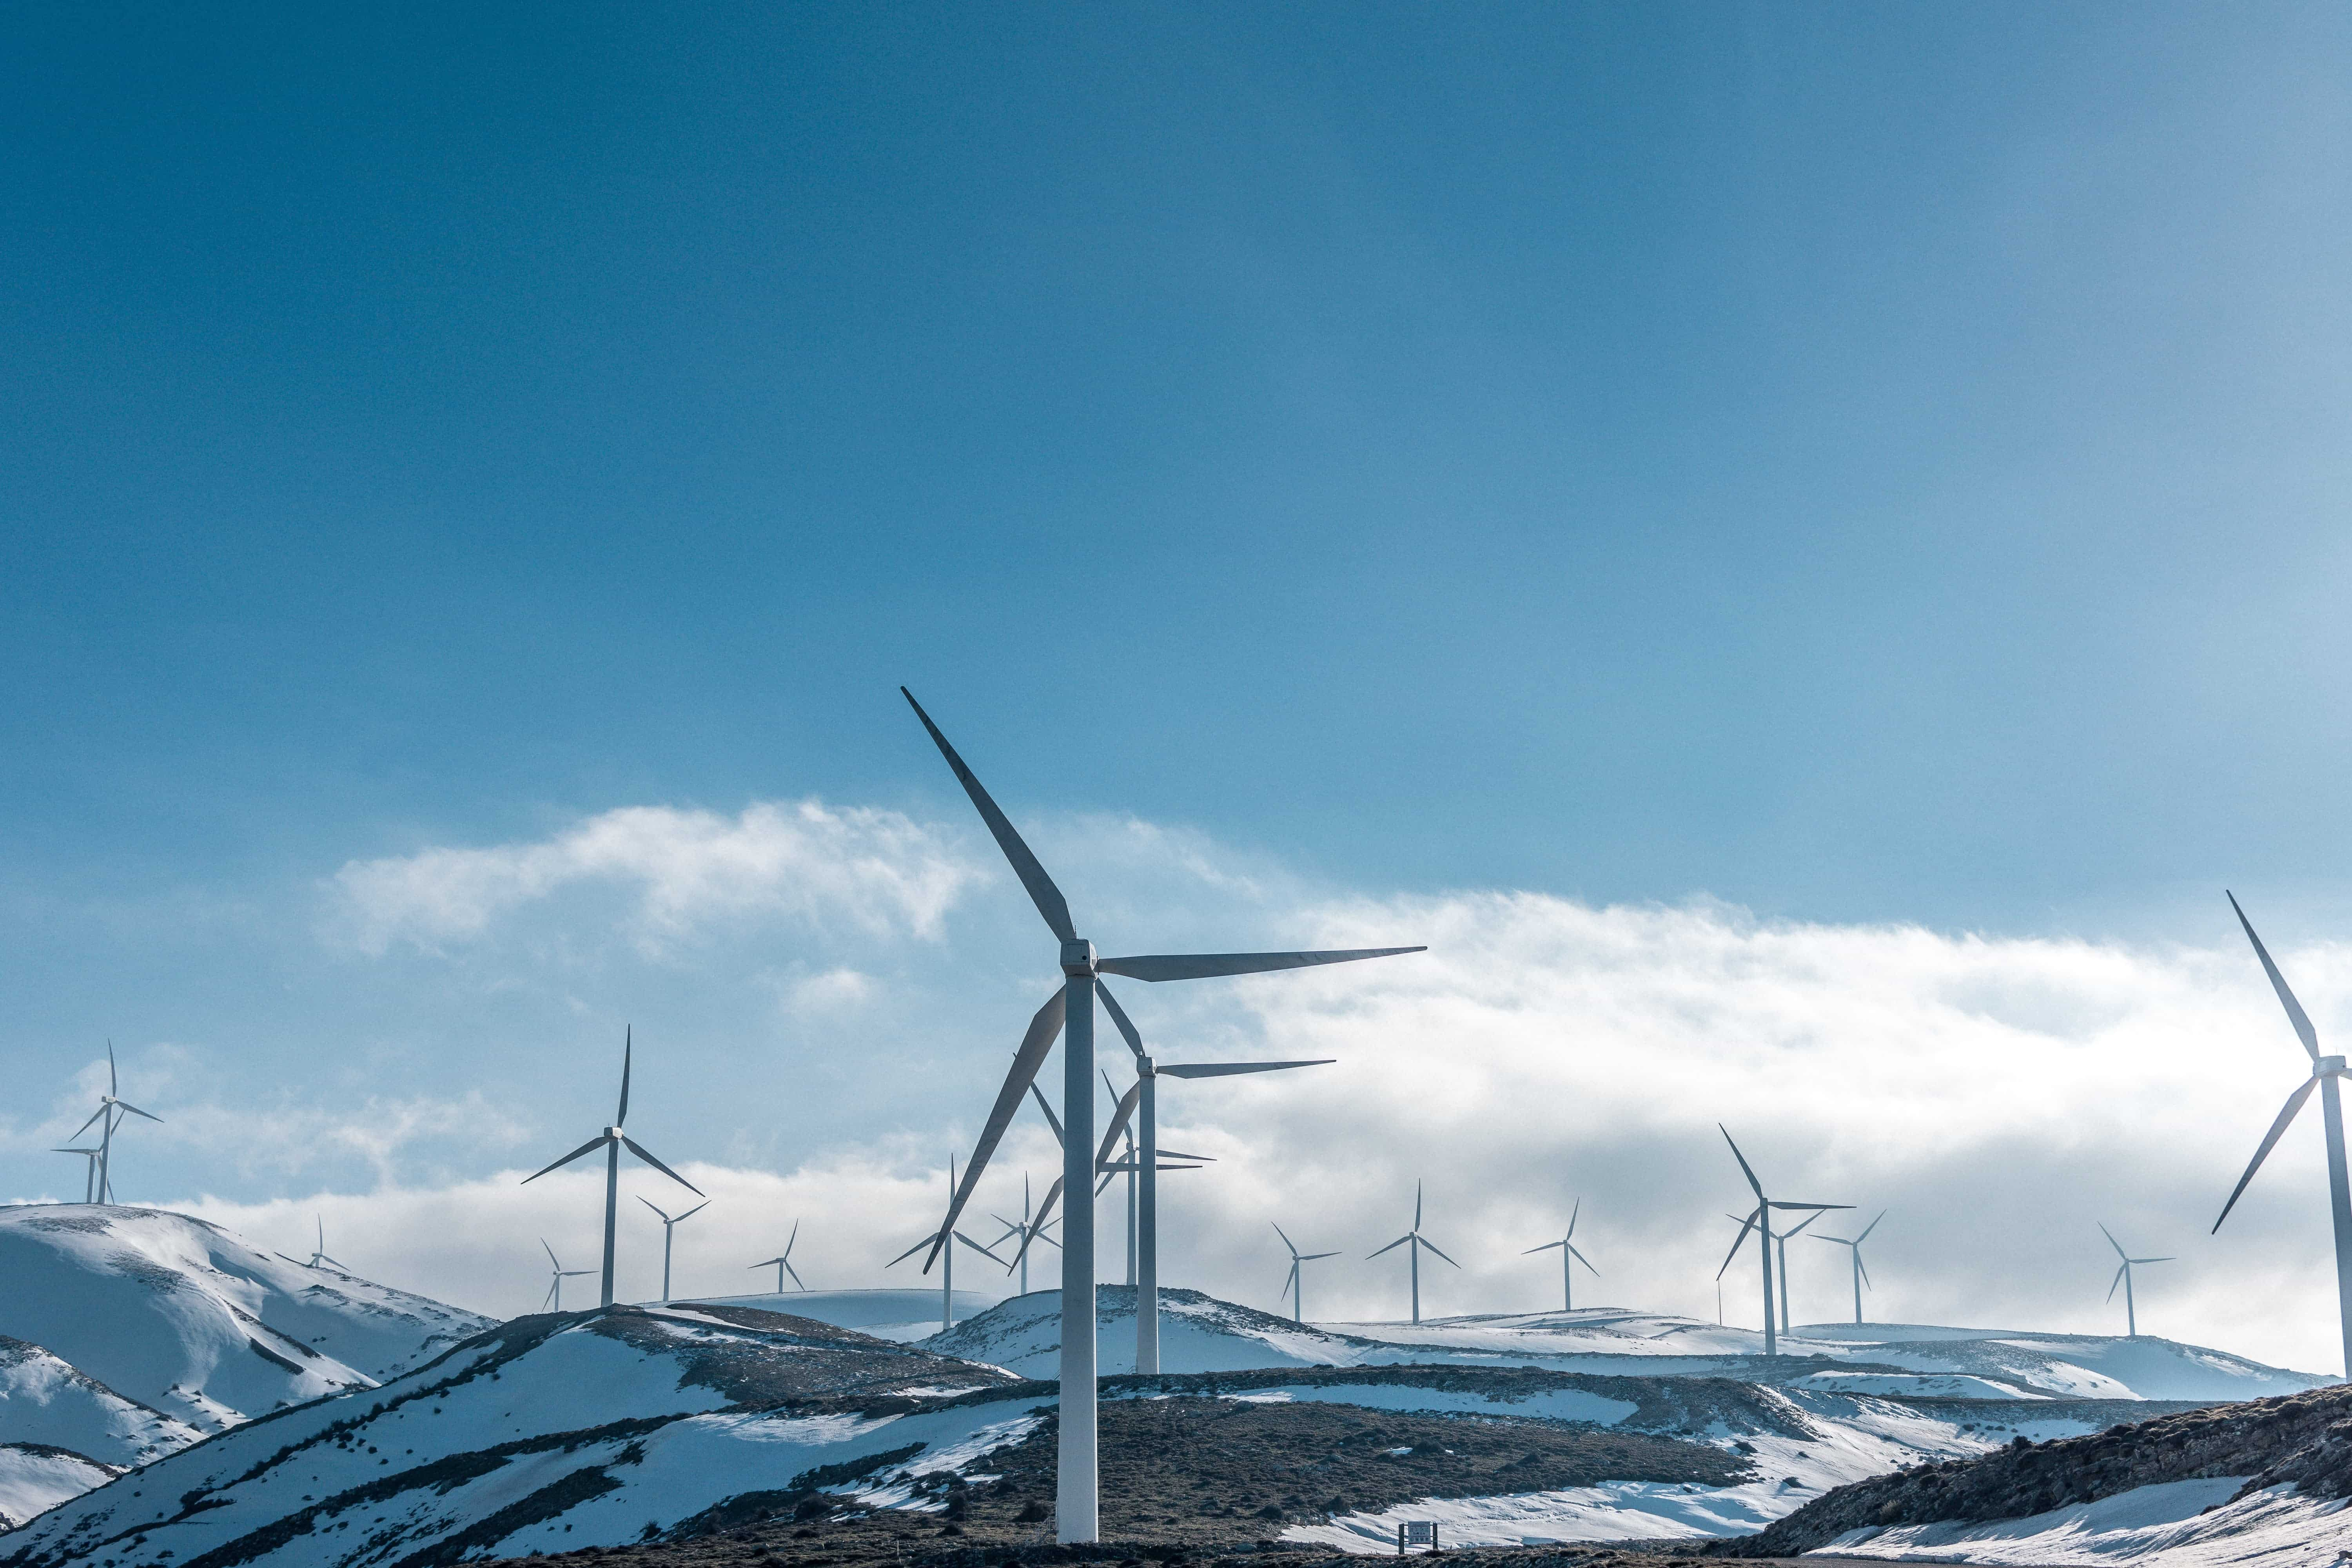 image of windmills over mountains